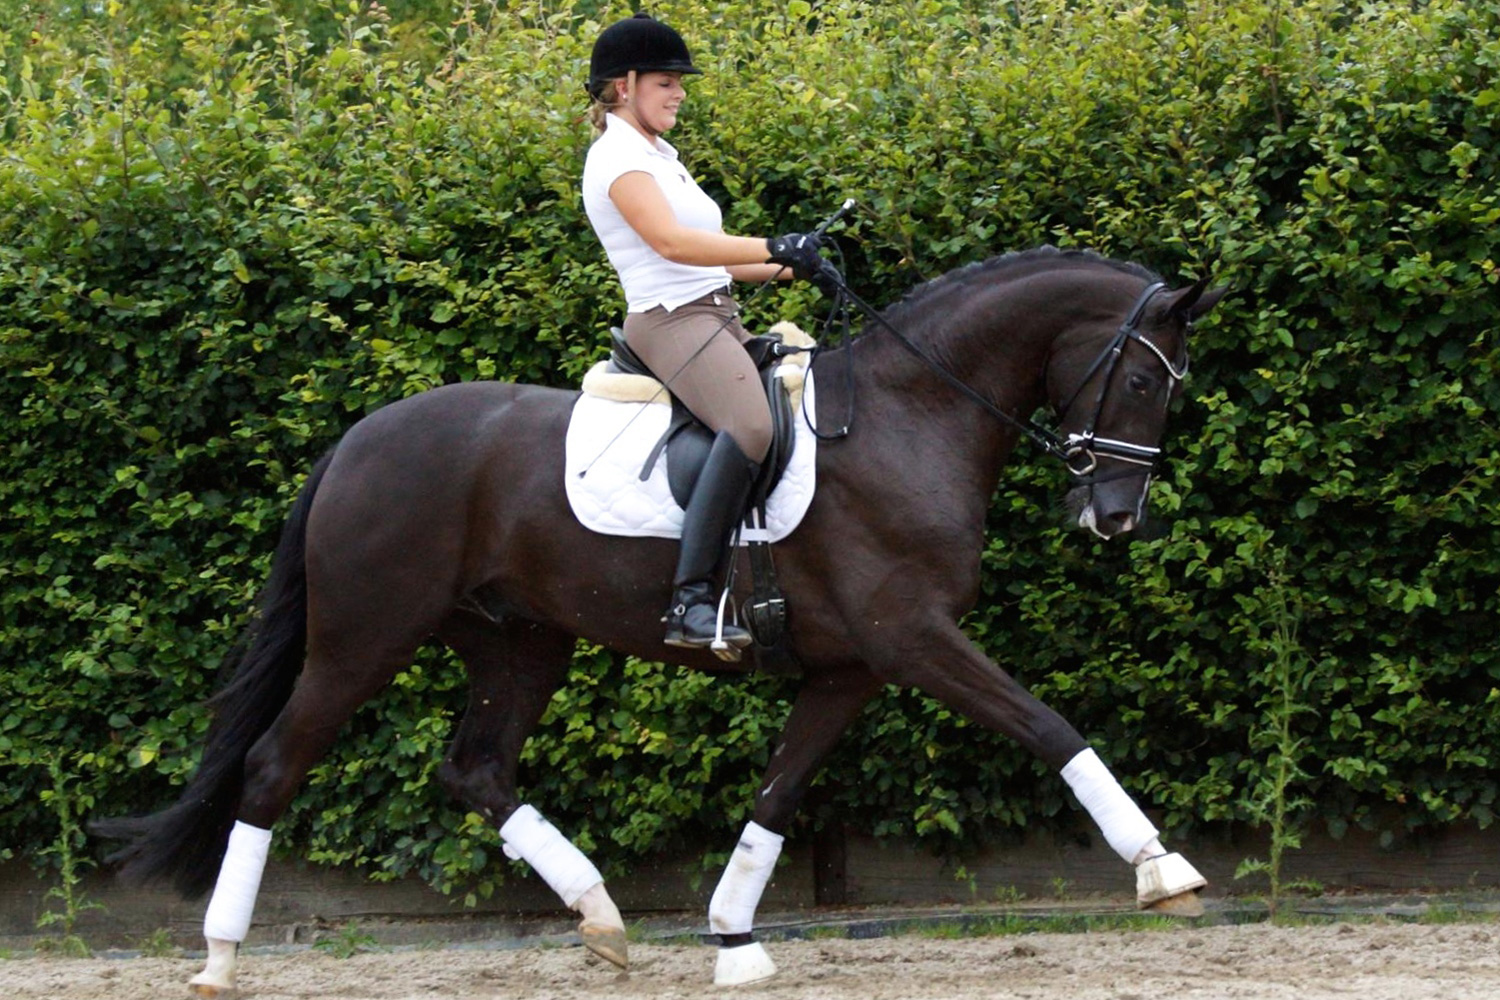 007-heritage-farm-sport-horse-sale-warmblood-sotto-voce-de-niro